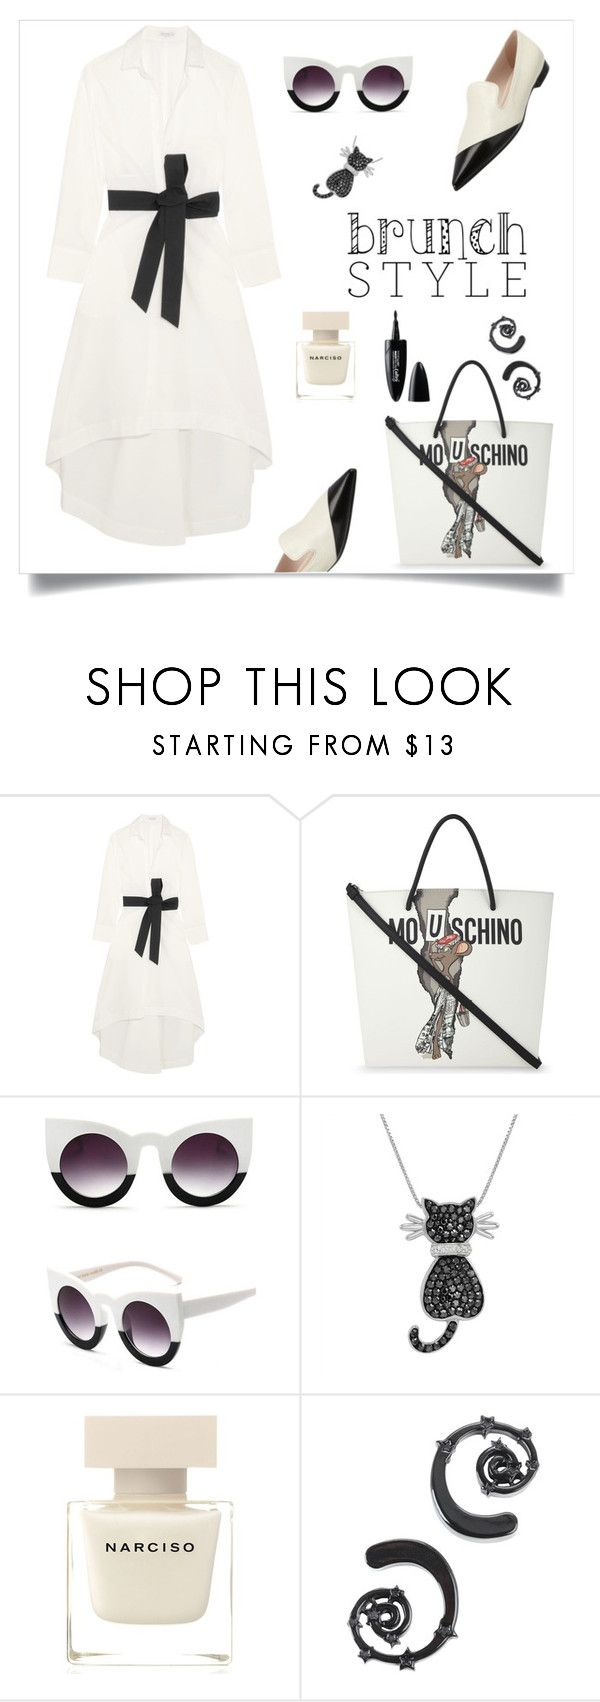 """""""brunch style"""" by tato-eleni ❤ liked on Polyvore featuring Brunello Cucinelli, Moschino, Amanda Rose Collection, Narciso Rodriguez, Hot Topic and Maybelline"""